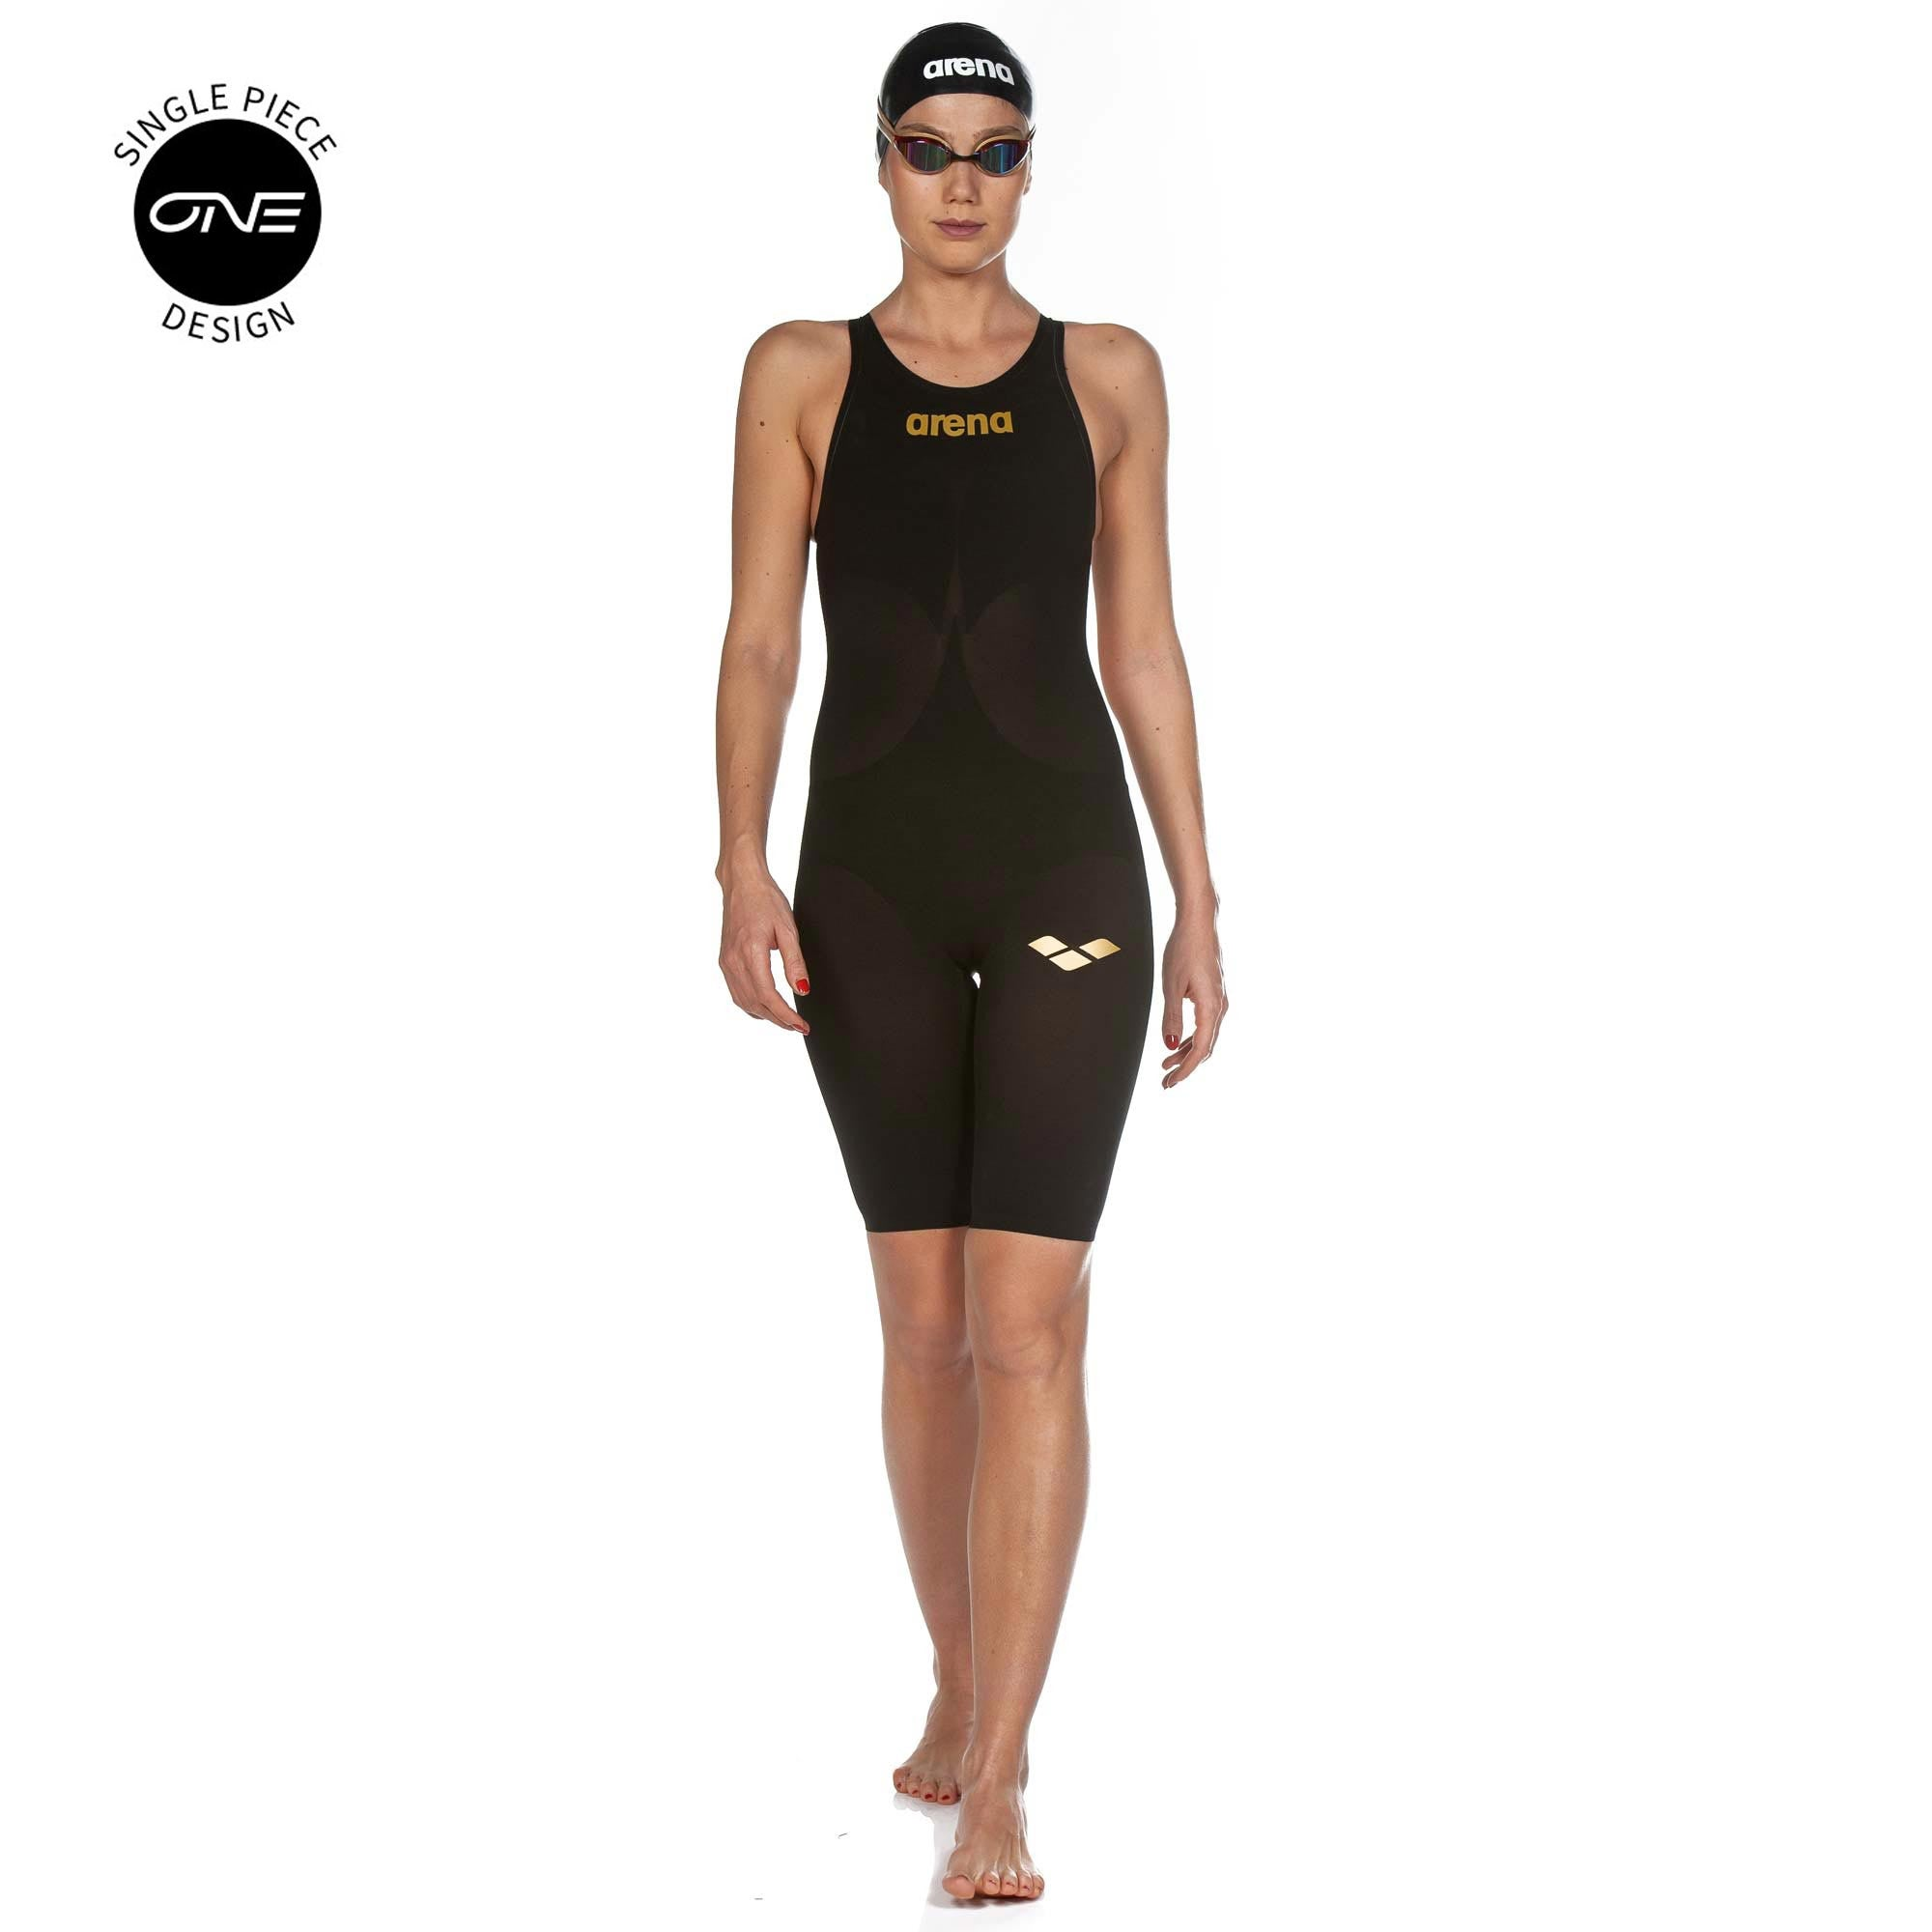 7d4384ef666 Arena Womens Powerskin Carbon Air 2 Open Back - Black Gold - Tri To Swim